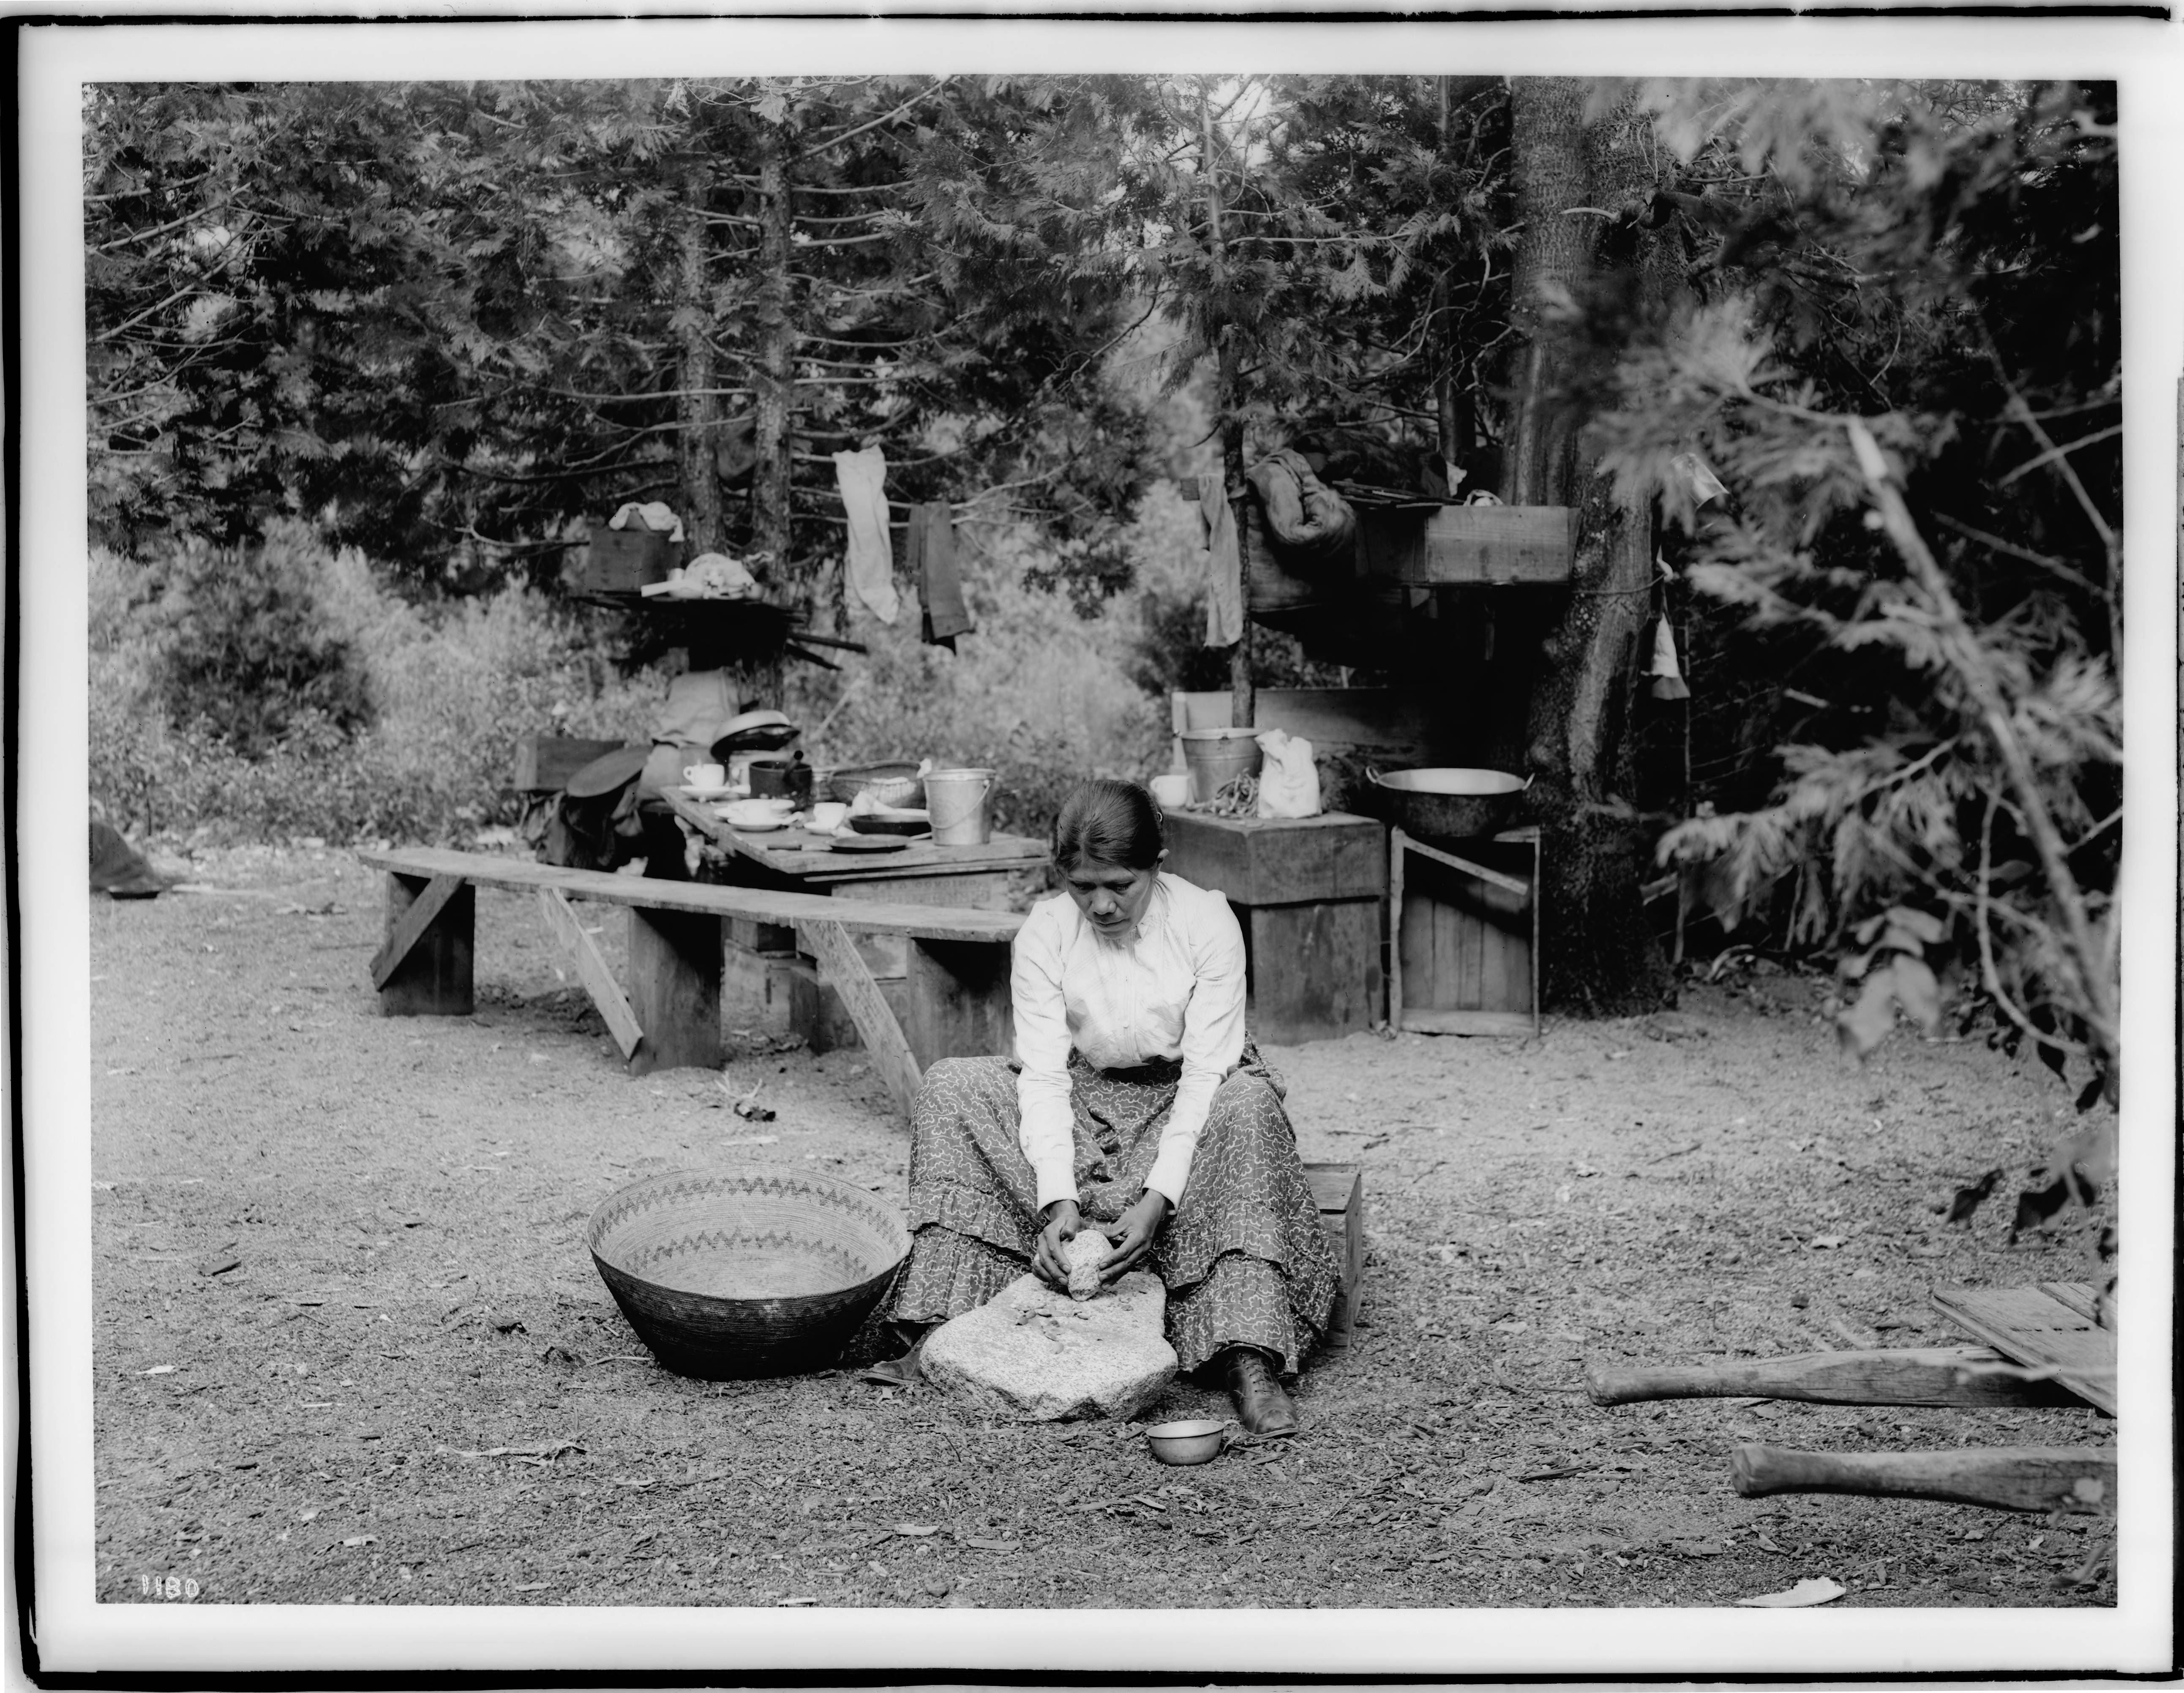 File Paiute Indian Woman Sitting On A Small Wooden Crate